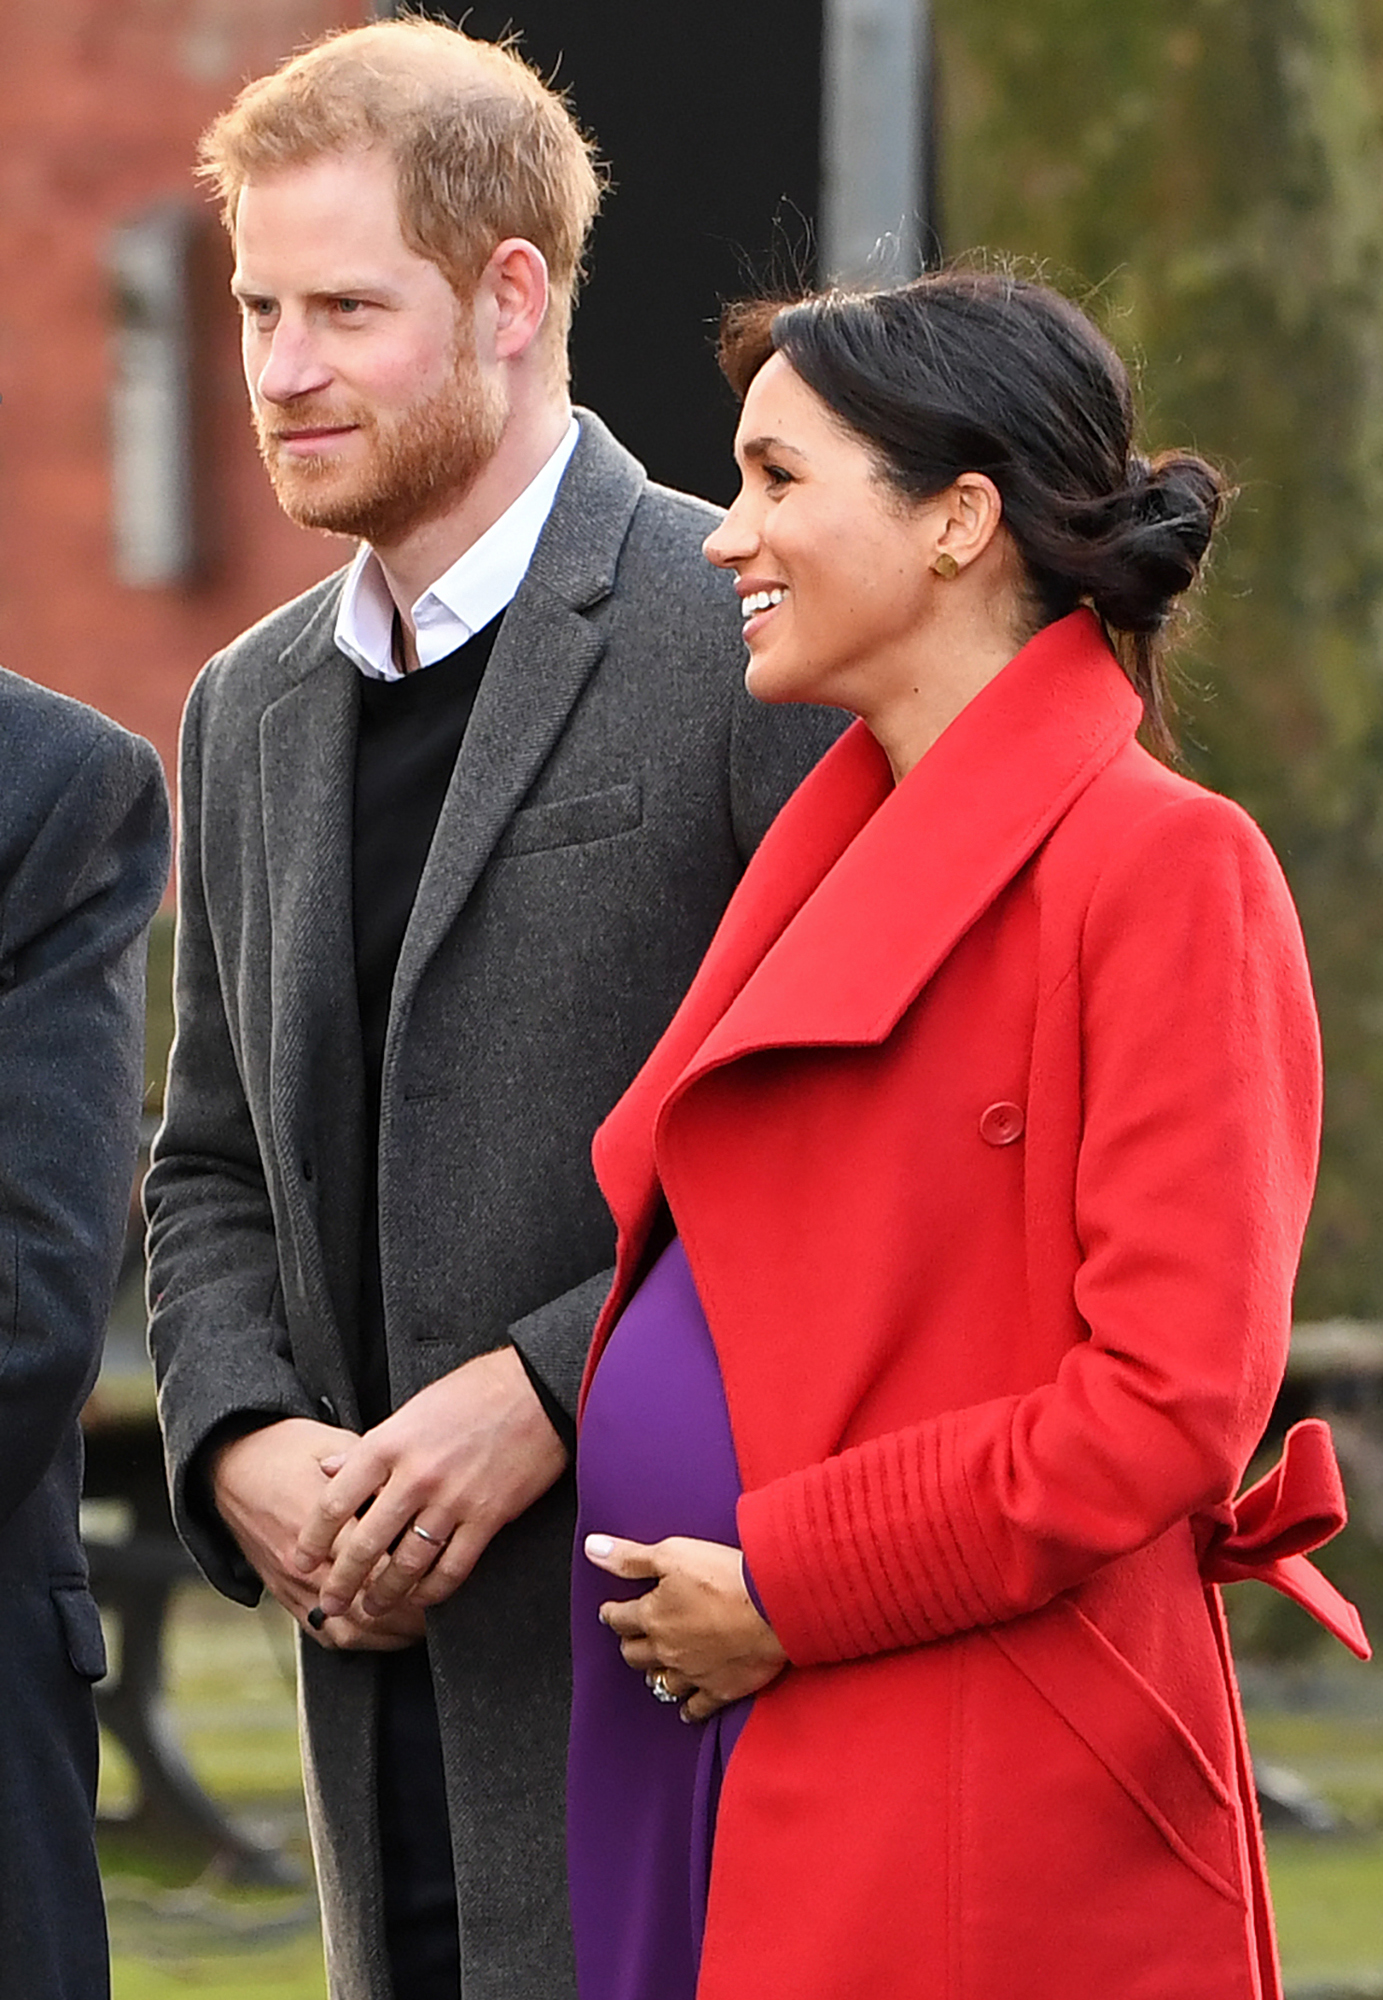 BABY SUSSEX IS LIKELY AN APRIL BABY